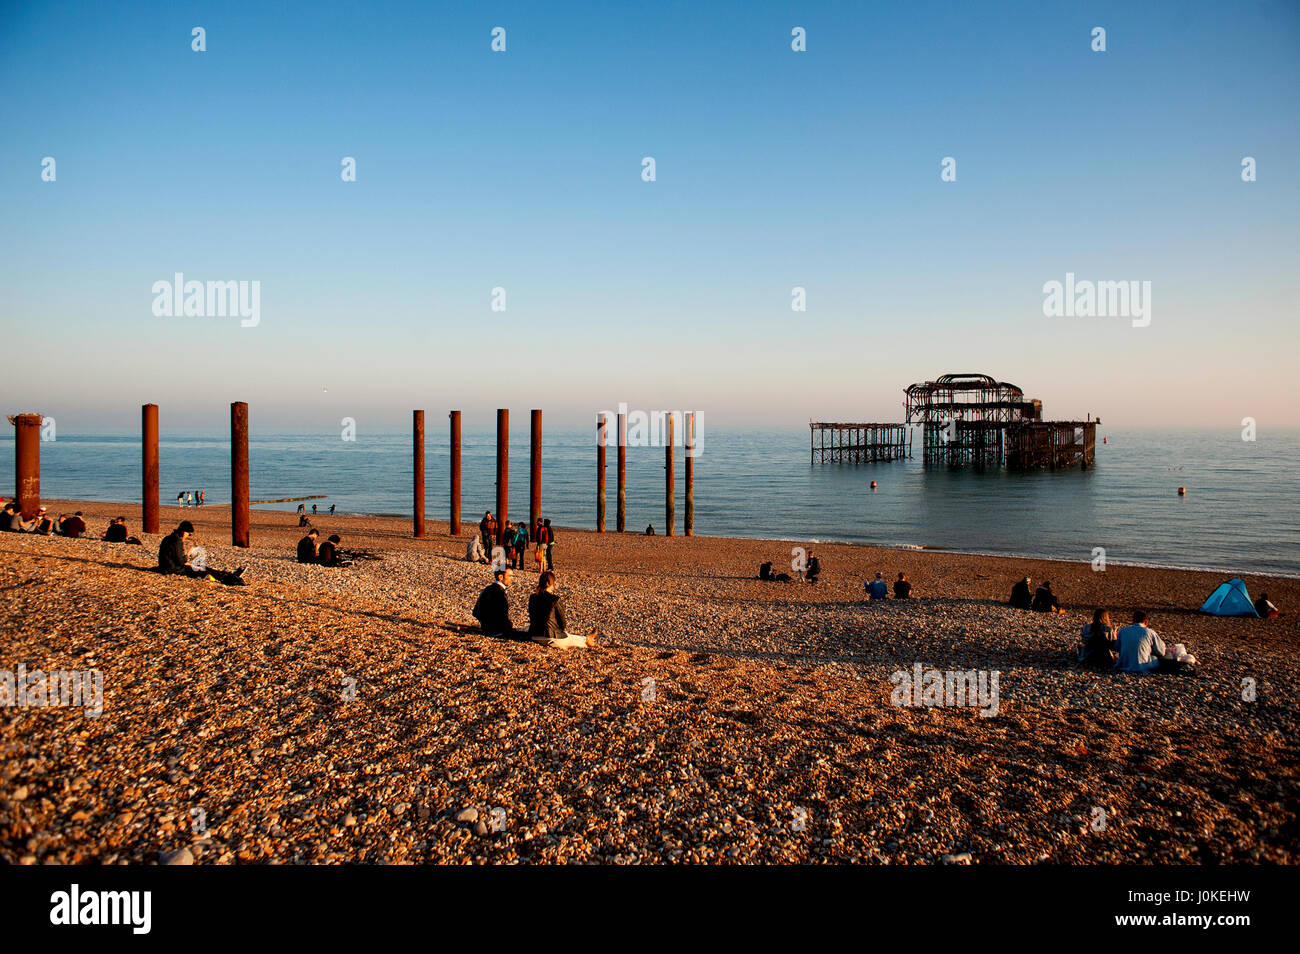 People sit on the pebble beach at Brighton's West Pier a famous landmark on the south coast of England, now a burnt - Stock Image